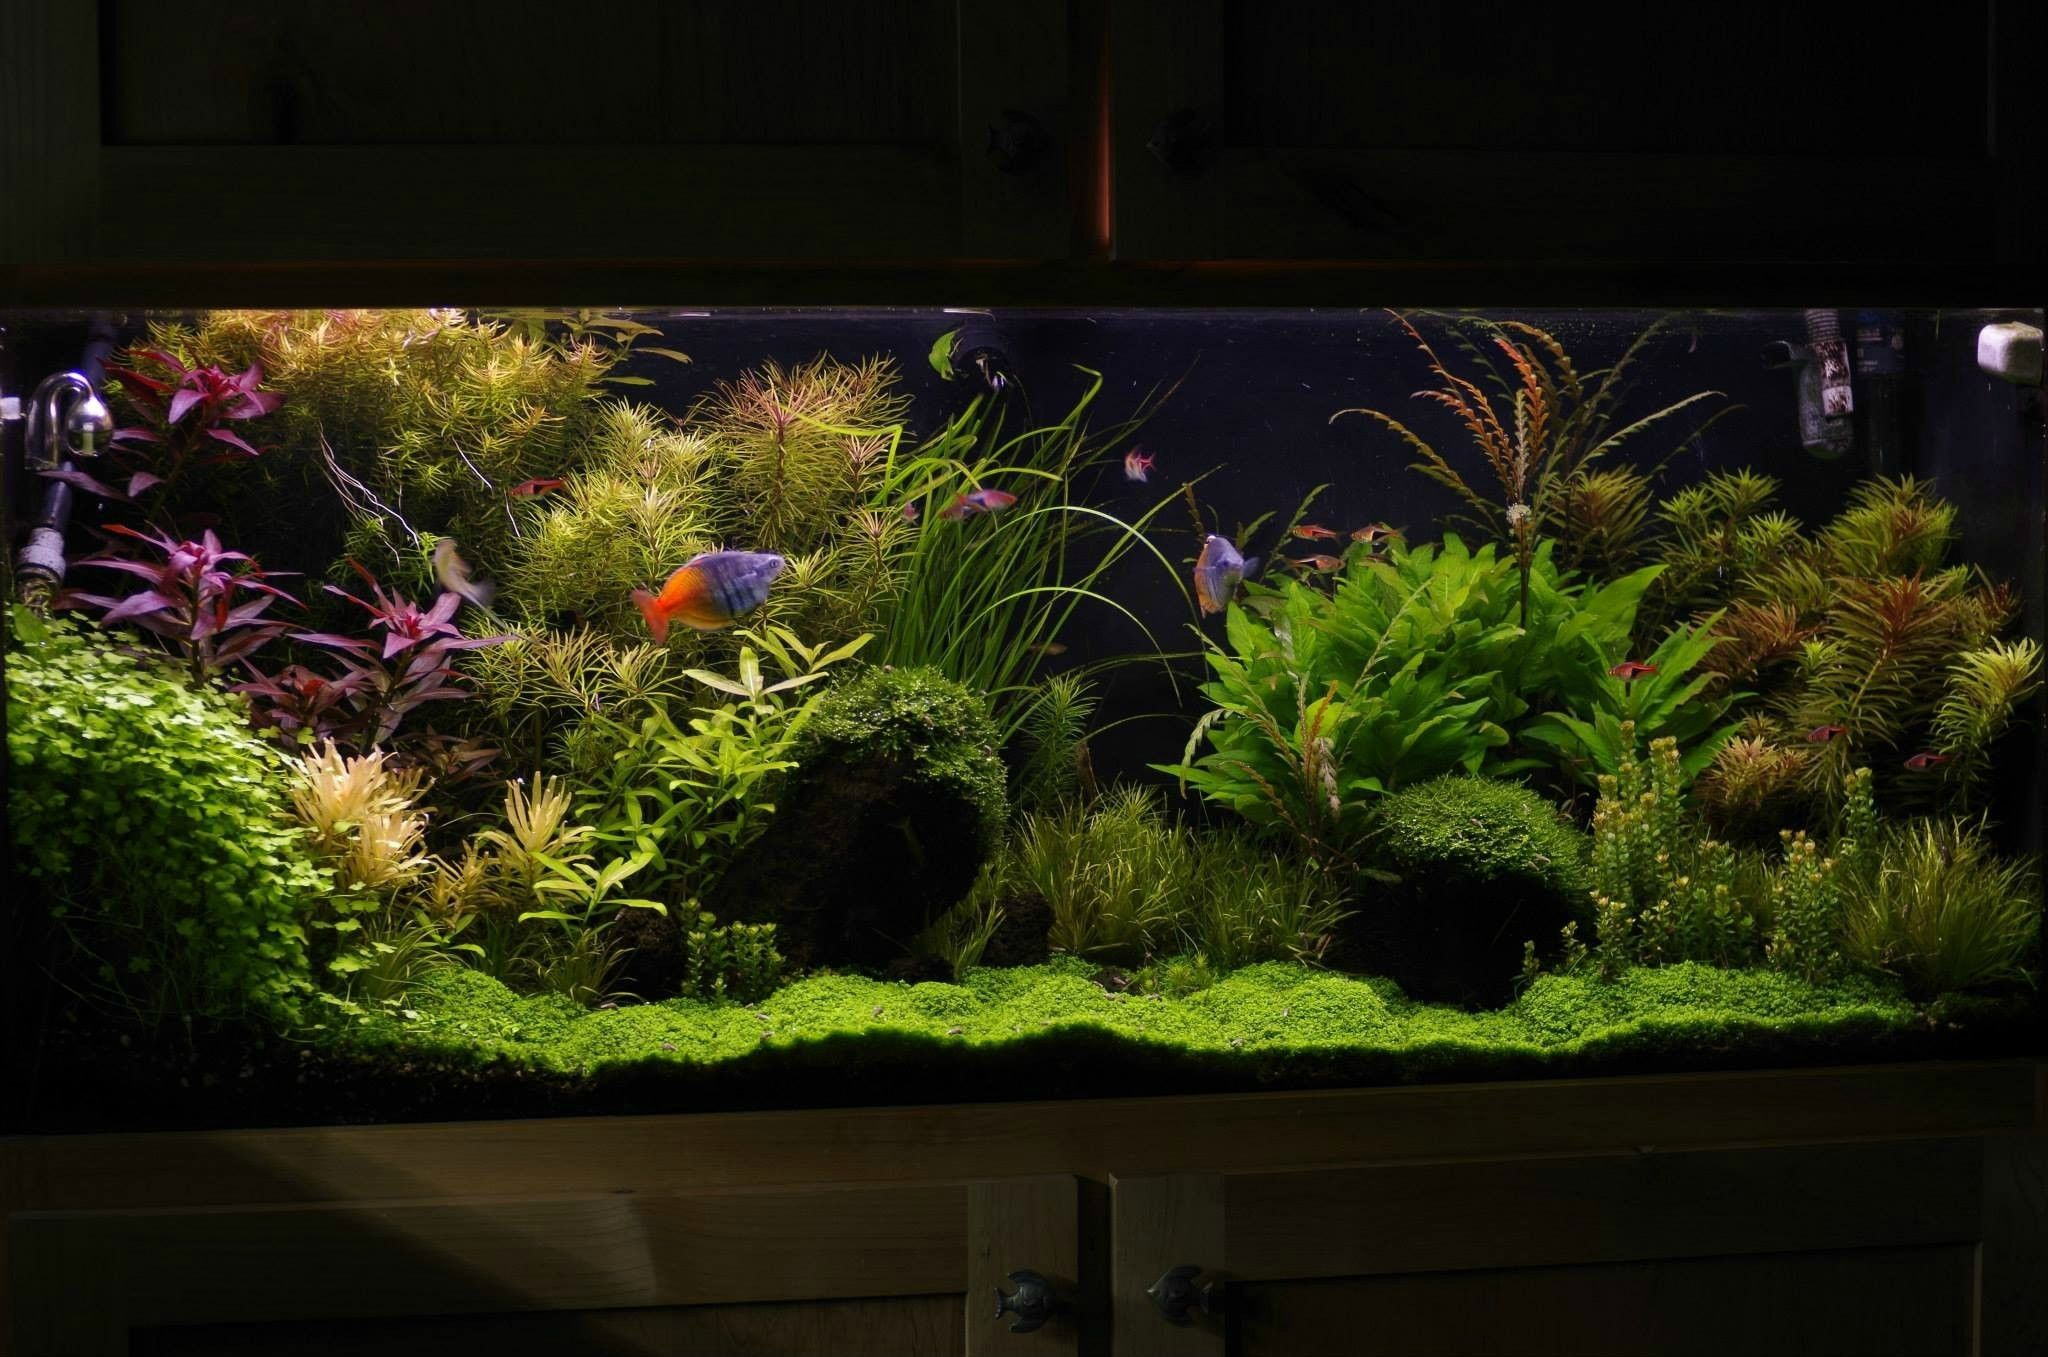 Have You Ever Seen A Nice Looking 55 Gallon